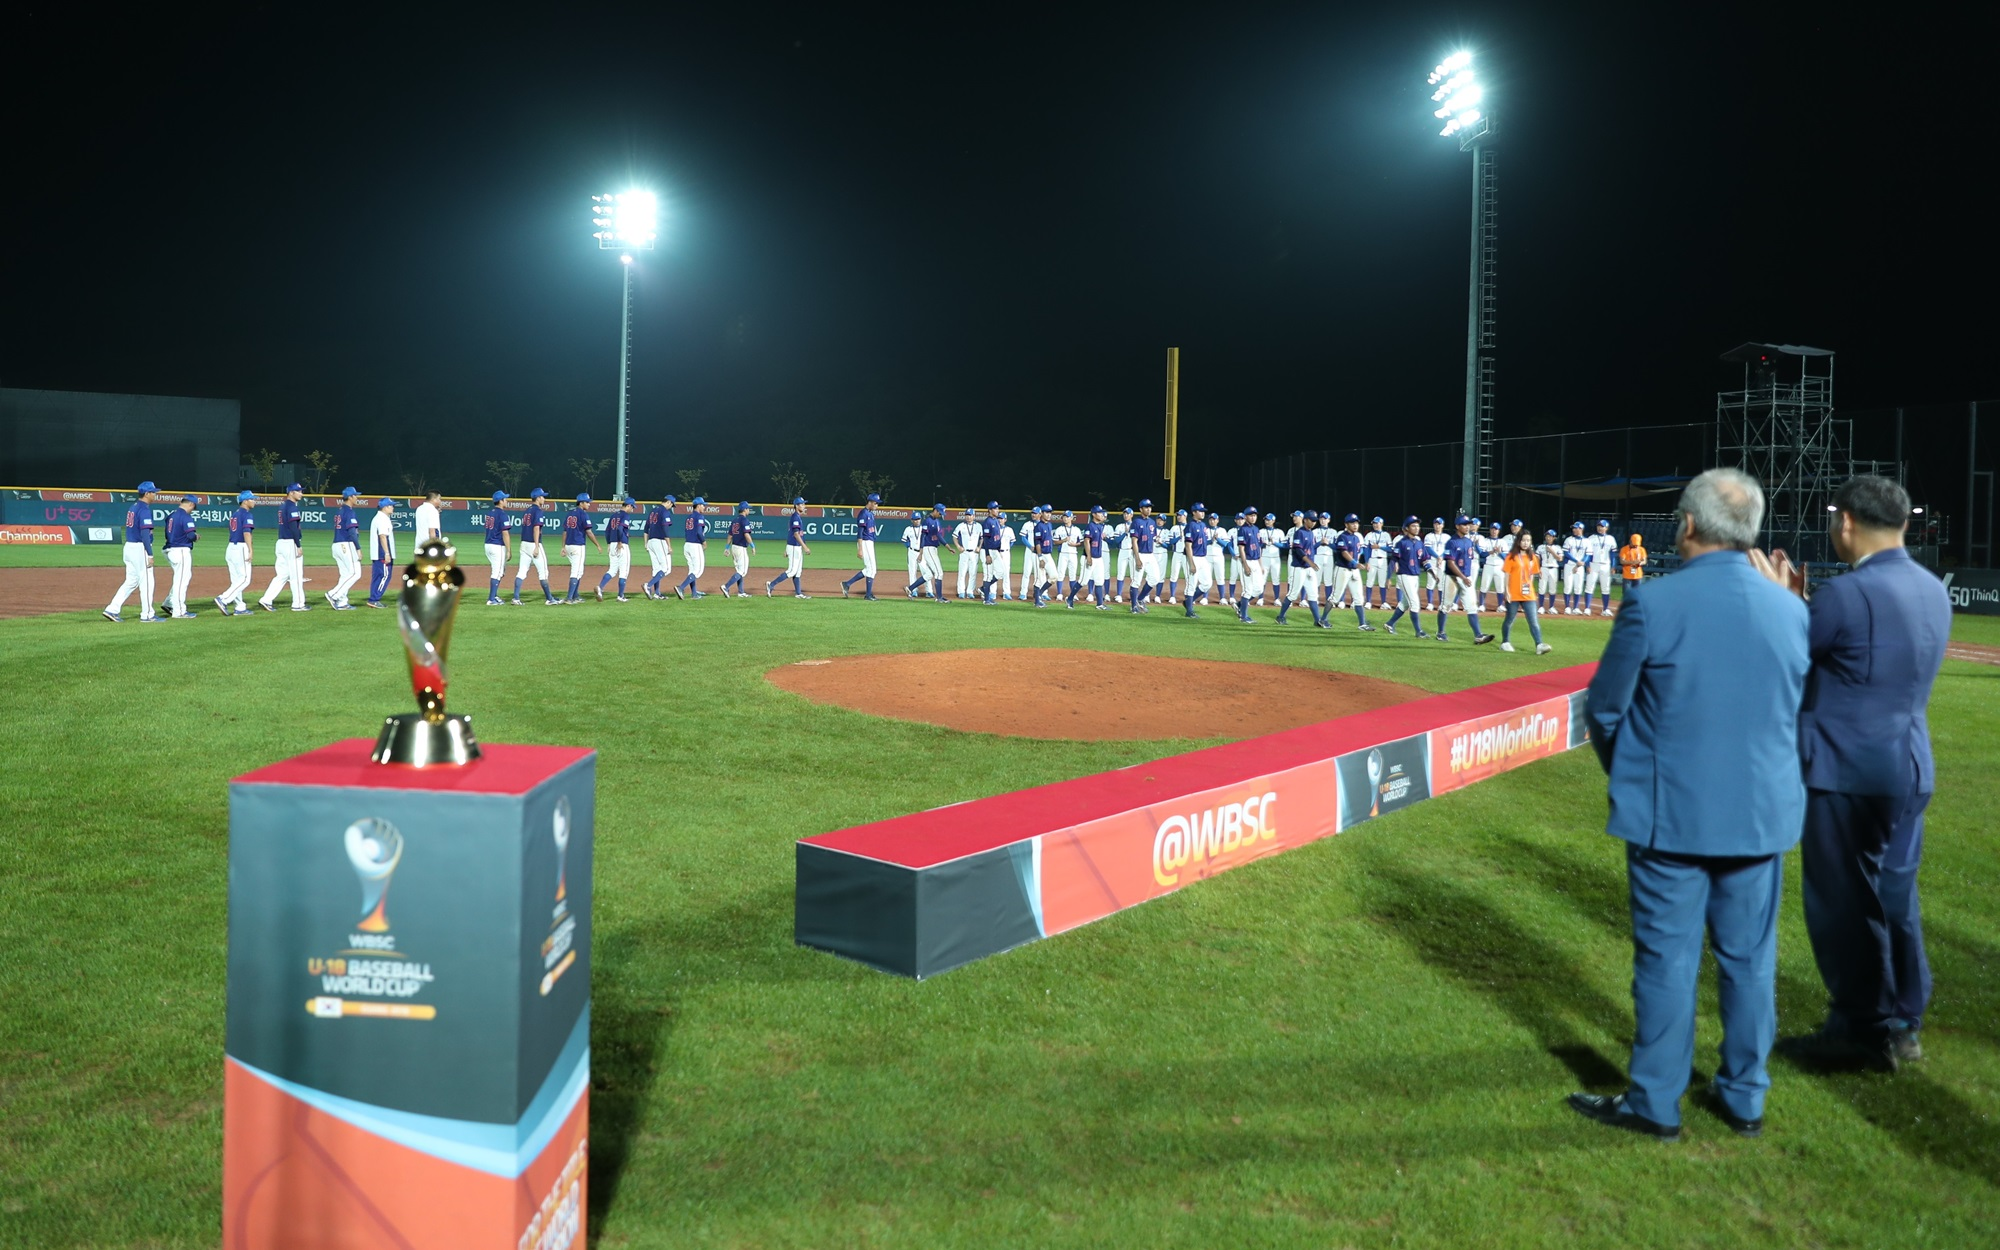 WBSC President Riccardo Fraccari awarded the new U-18 World Champions